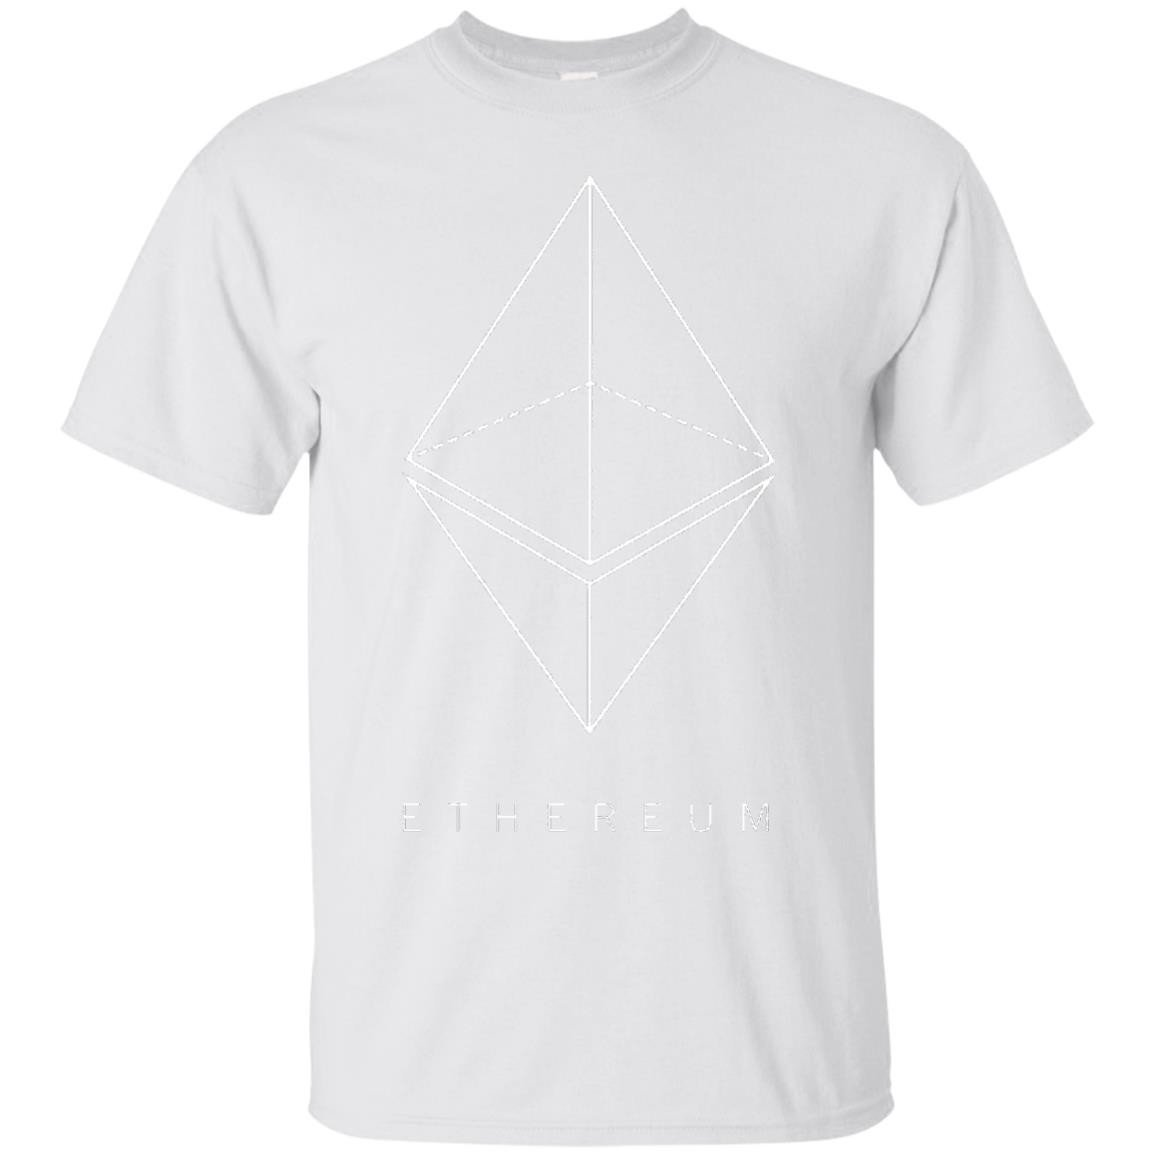 Ethereum – Blockchain T-Shirt